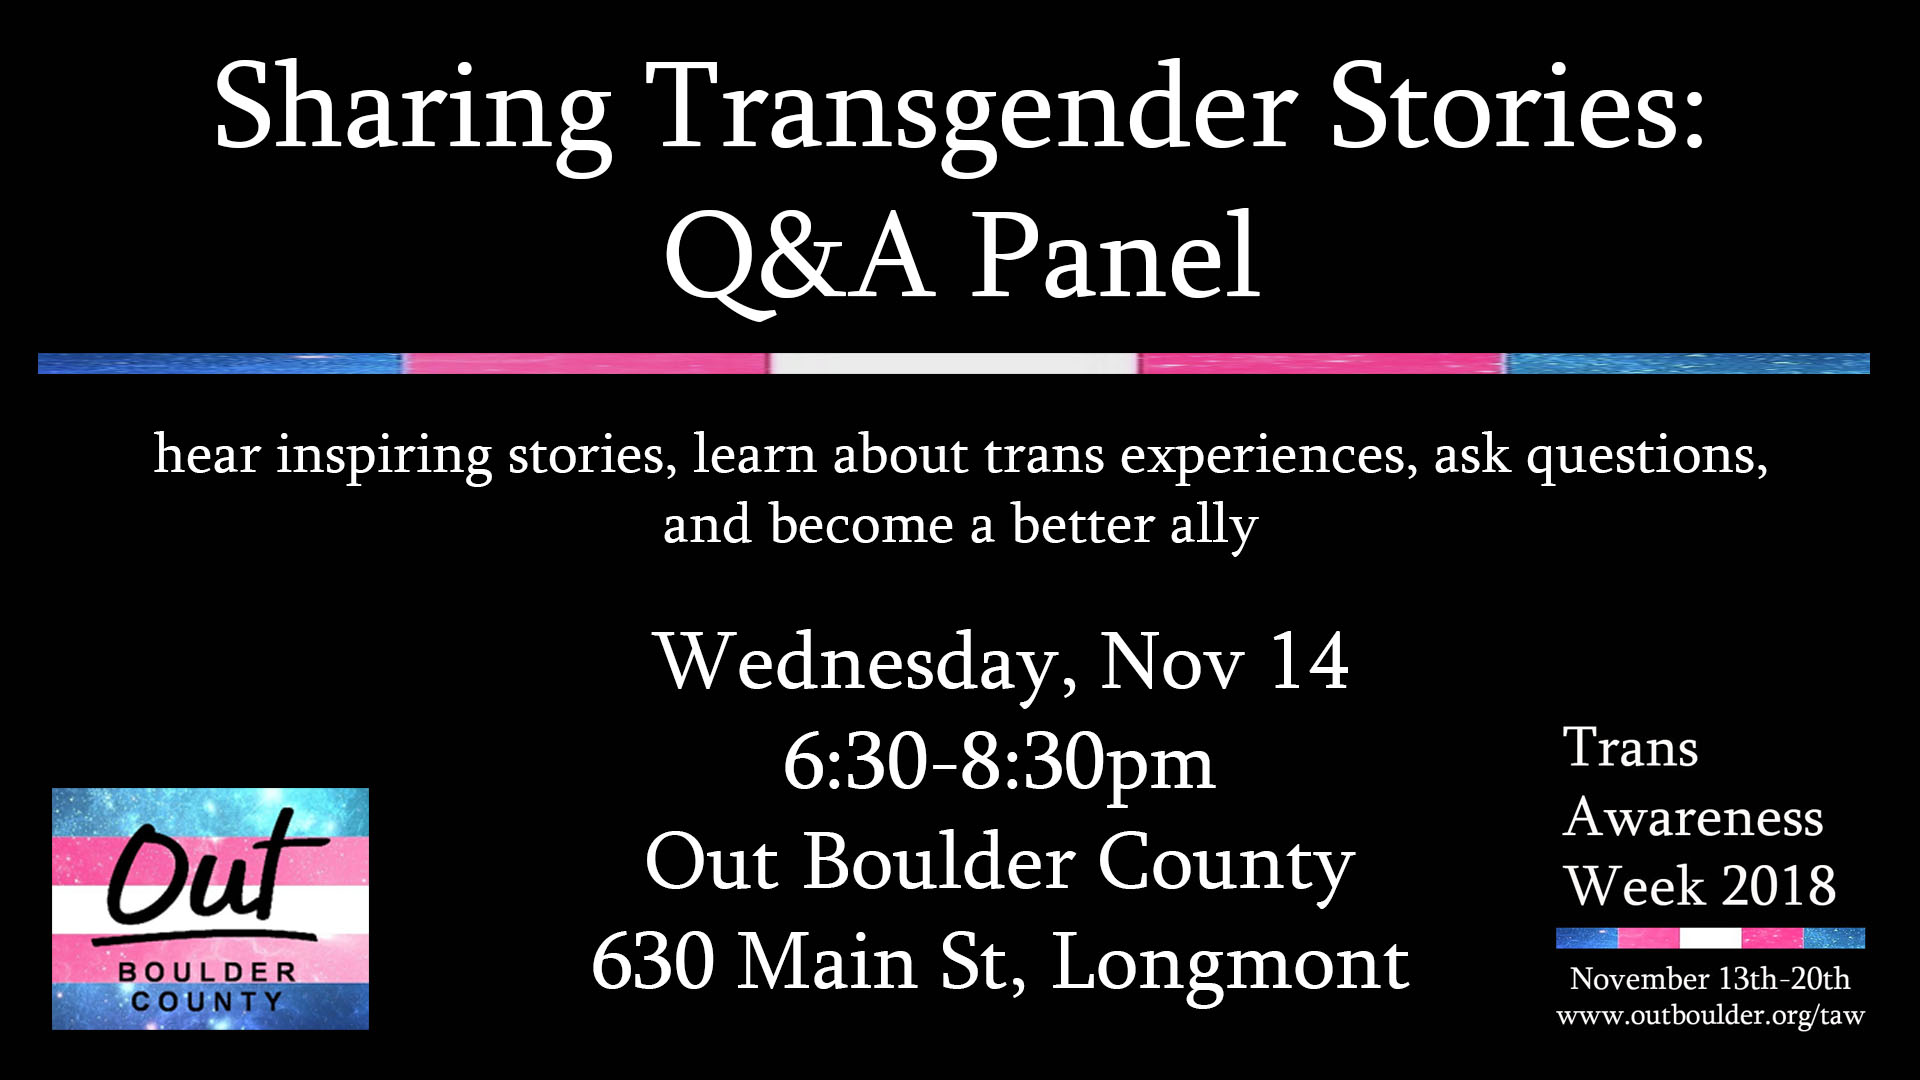 Join us for an evening of story-telling in which you will hear inspiring stories, learn about trans experiences, have an opportunity to have your questions answered, and learn how to be a better ally.   Facebook Event Info